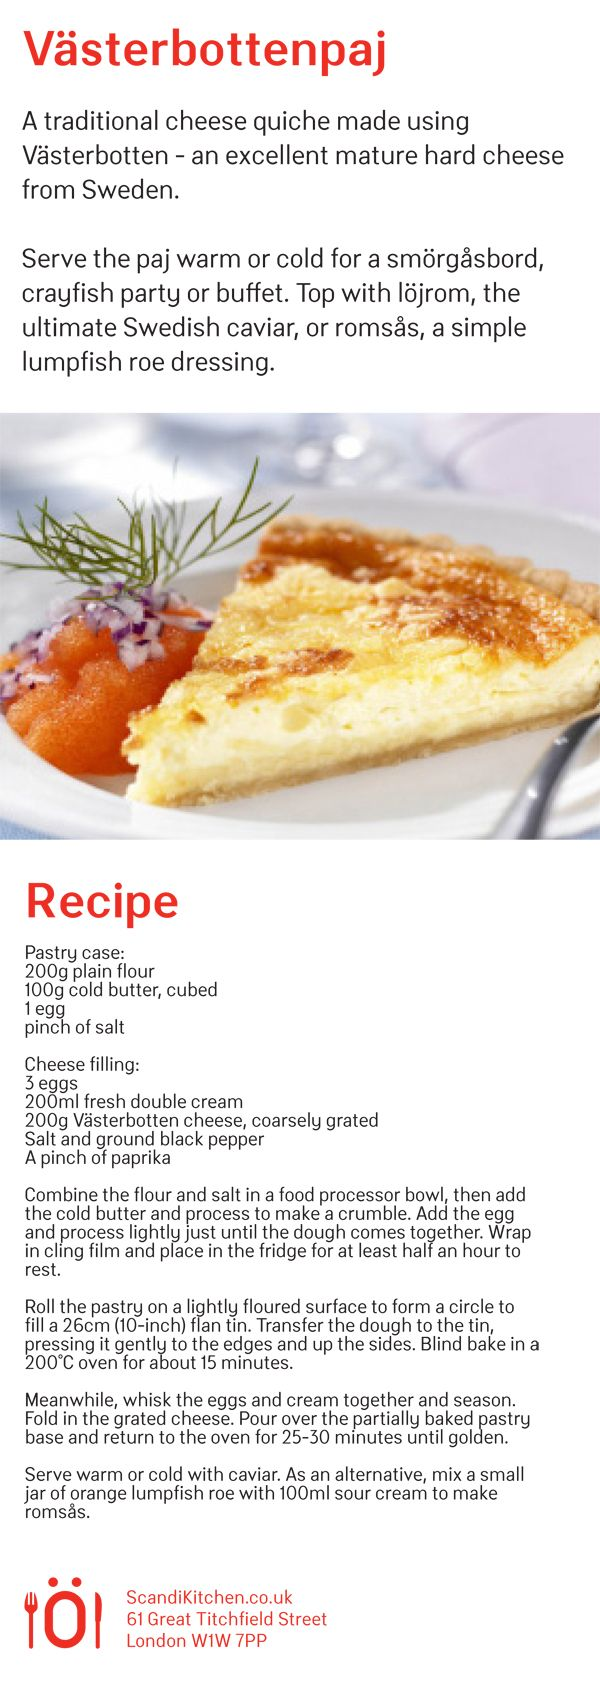 Our recipe for Swedish Västerbotten quiche. Essential for your Crayfish party.  www.scandikitchen.co.uk